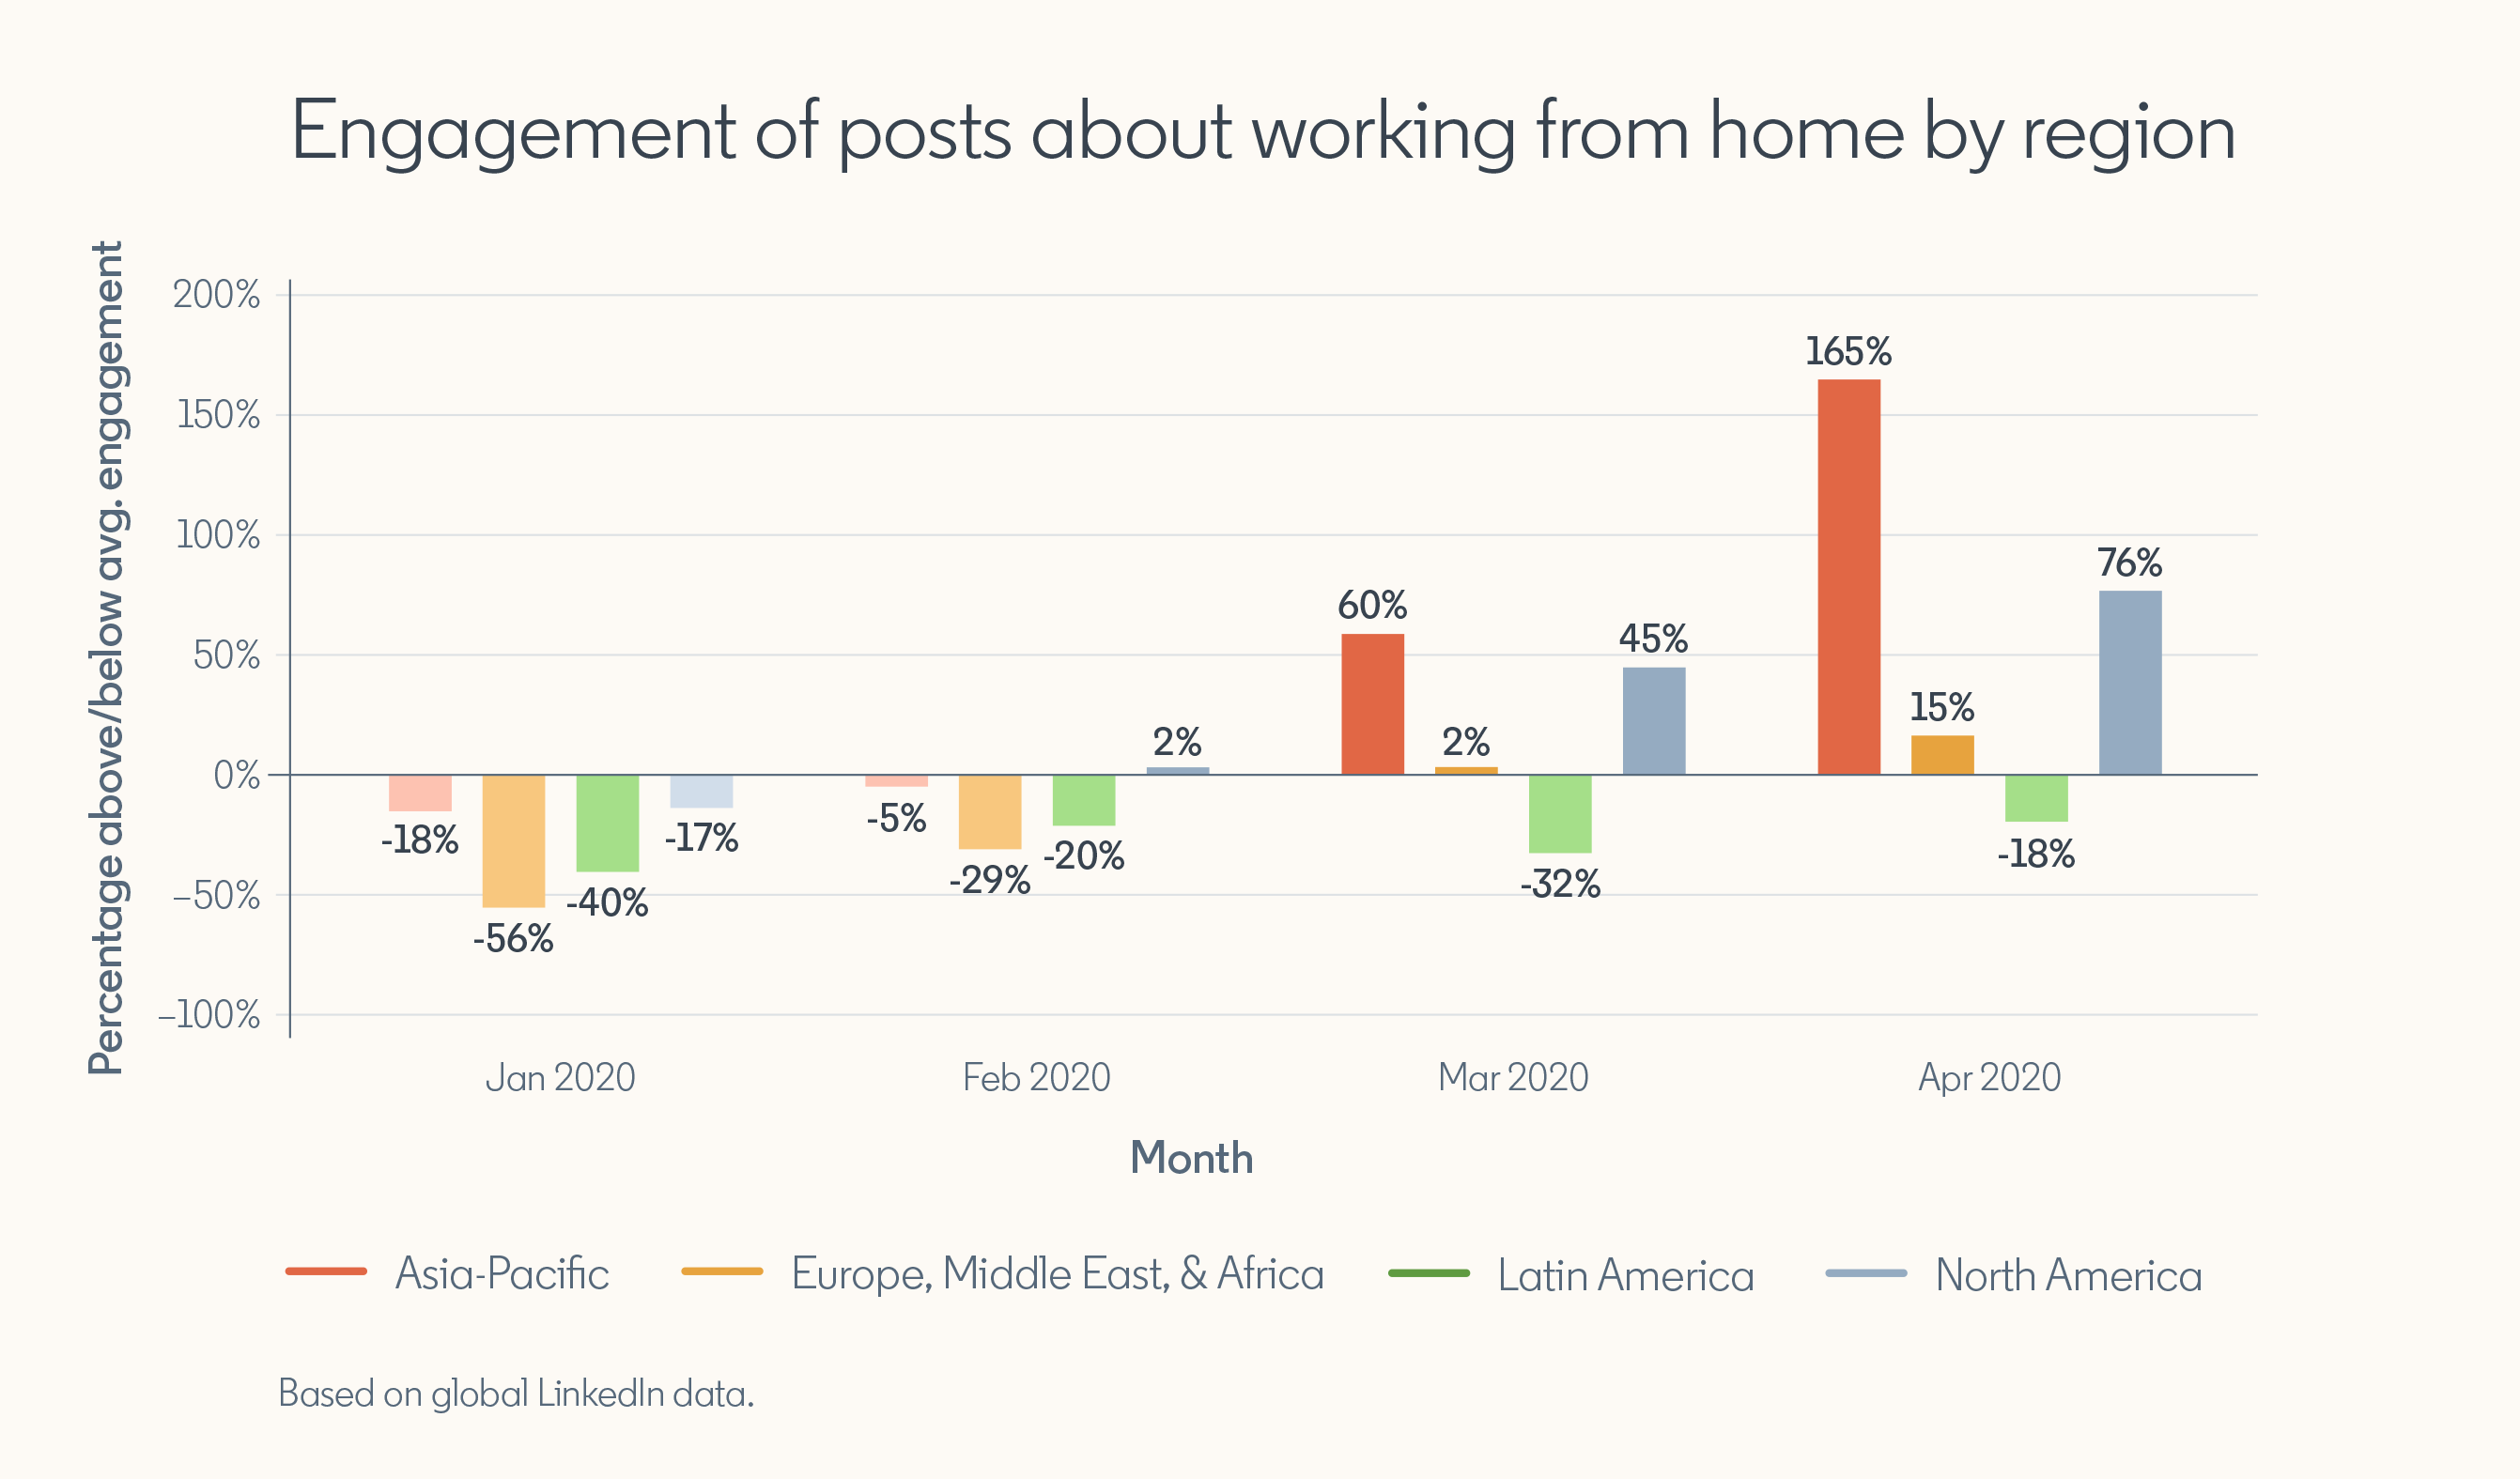 "Graph showing ""Engagement of posts about working from home by region""  Jan 2020: Asia Pacific — 18% below average engagement Europe & Middle East — 56% below average engagement Latin America — 40% below average engagement North America — 17% below average engagement  Feb 2020 Asia Pacific — 5% below average engagement Europe & Middle East — 29% below average engagement Latin America — 20% below average engagement North America — 2% above average engagement  March 2020 Asia Pacific — 60% above average engagement Europe & Middle East — 2% above average engagement Latin America — 32% below average engagement North America — 45% above average engagement  April 2020 Asia Pacific — 165% above average engagement Europe & Middle East — 15% above average engagement Latin America — 18% below average engagement North America — 76% above average engagement  *Based on global LinkedIn data"